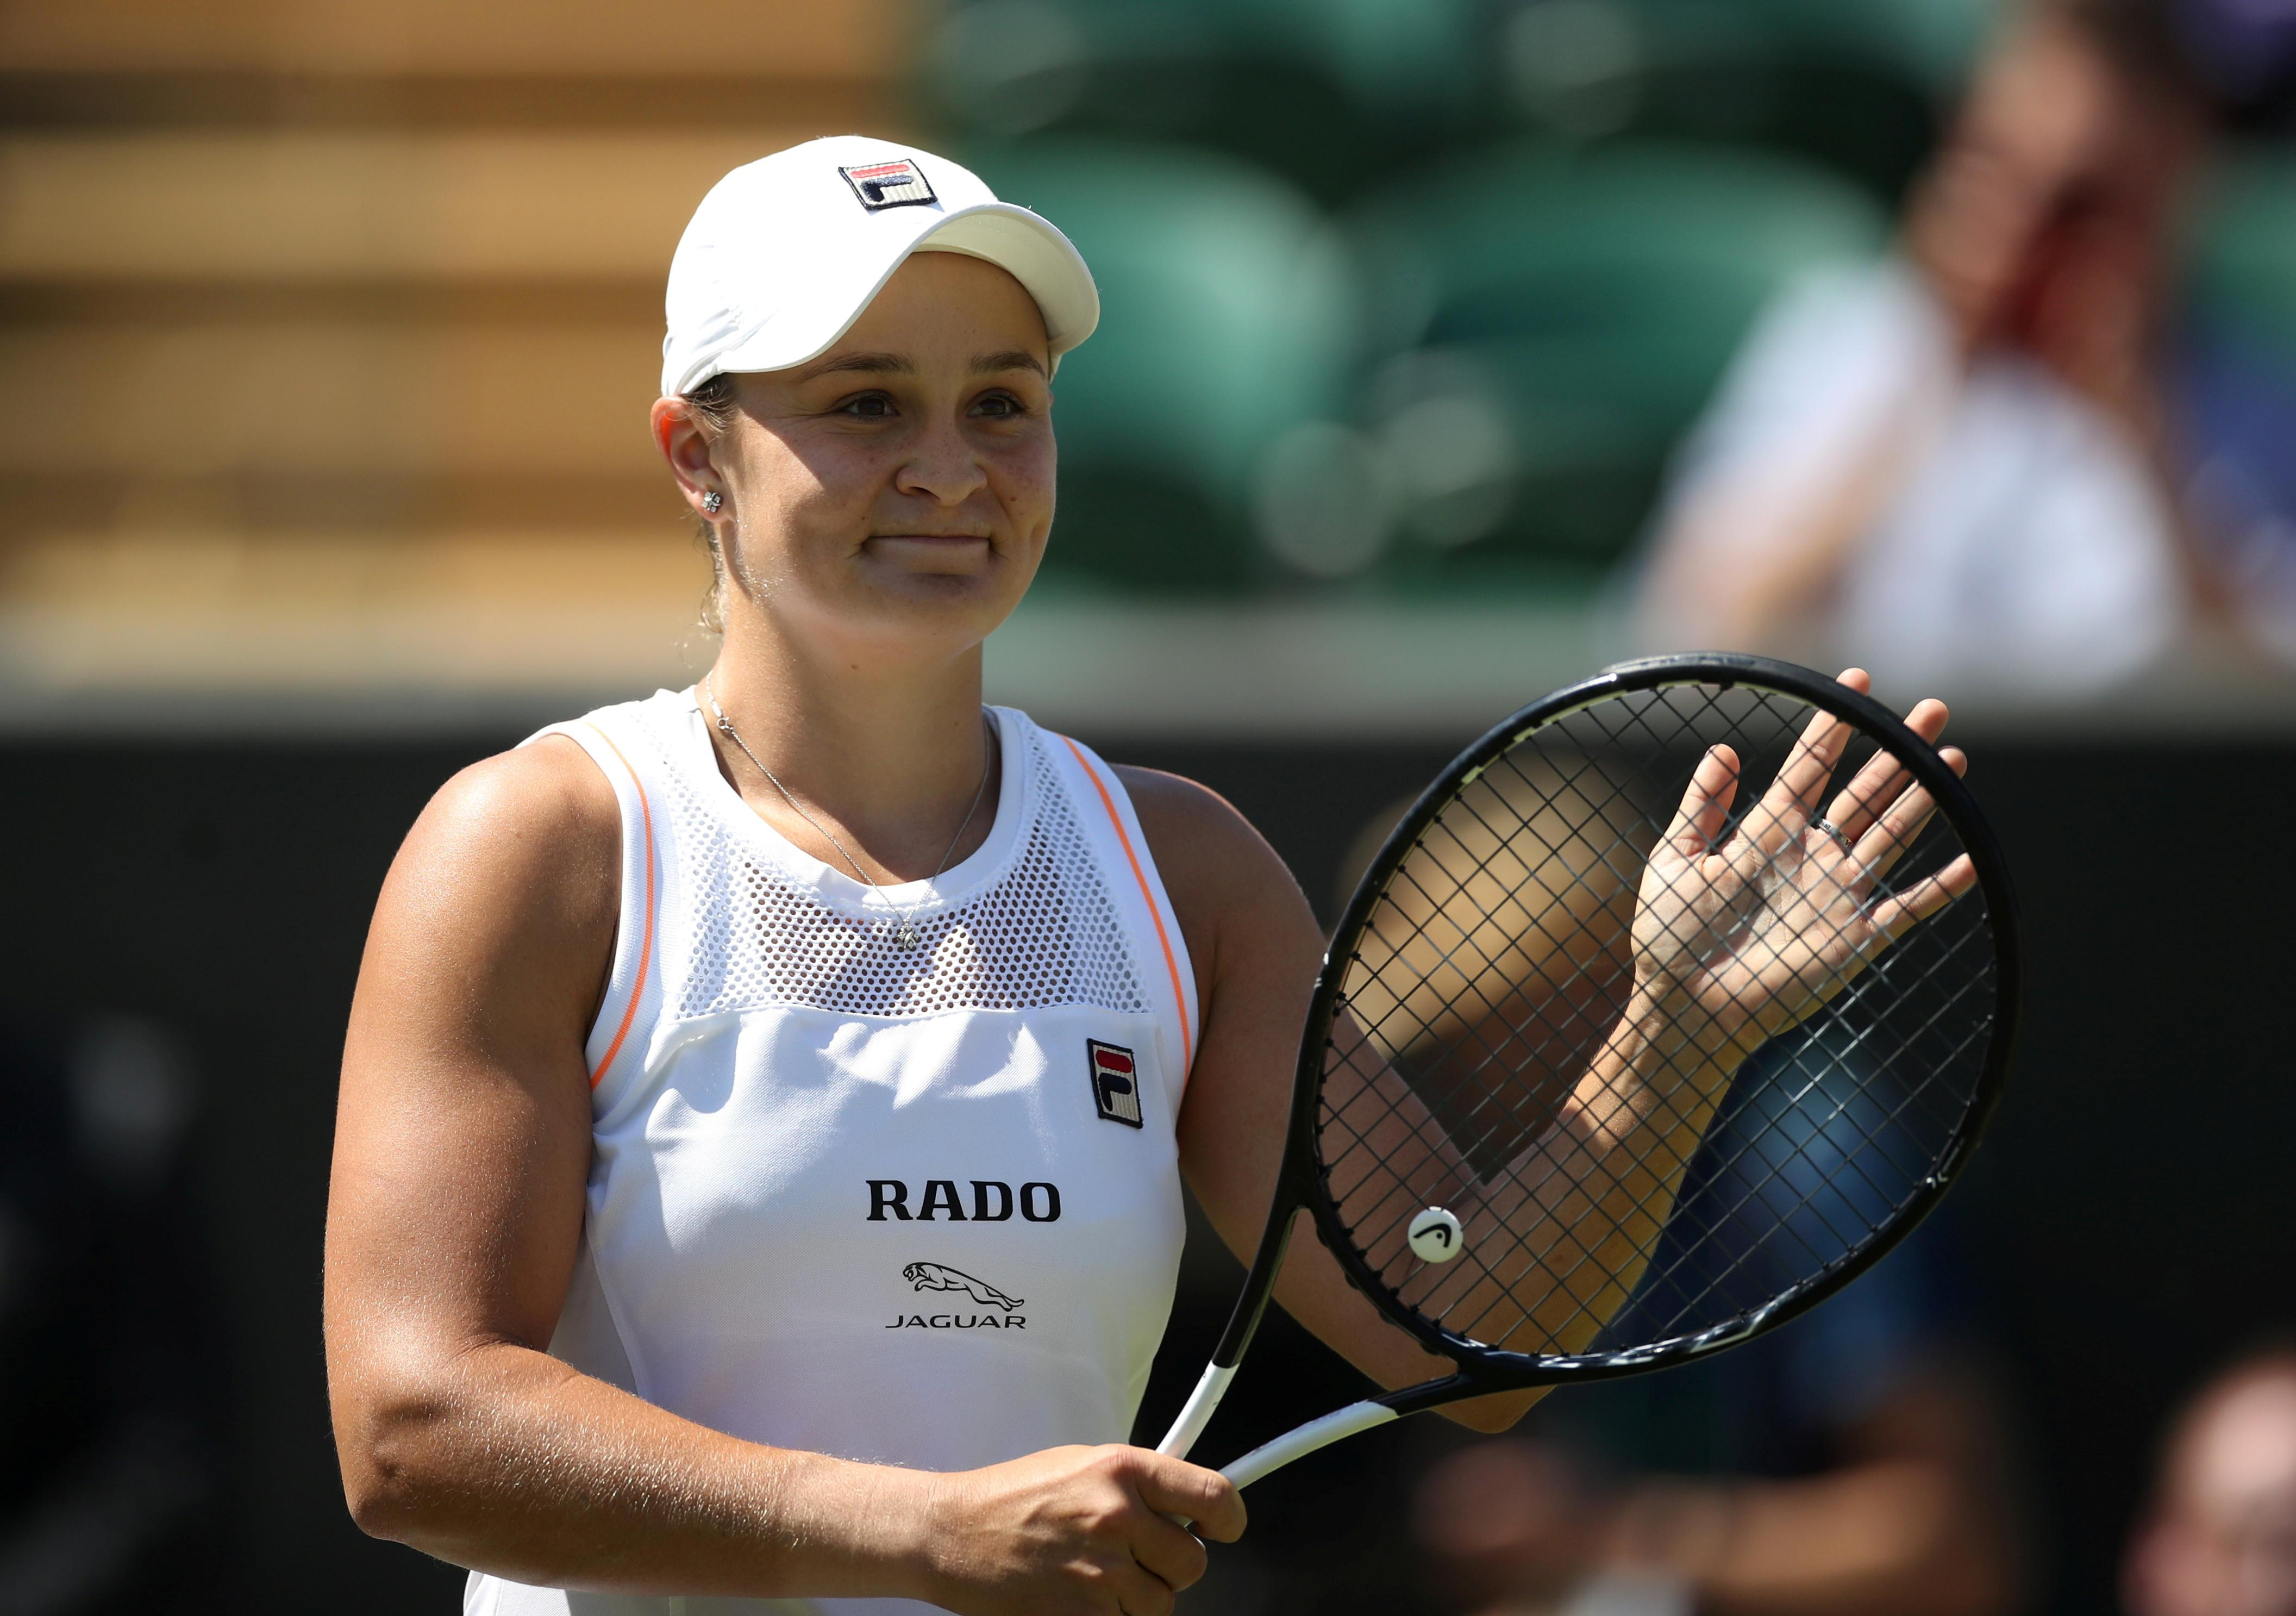 Tennis: Barty cheered on by Aussie fans on distant Court Two